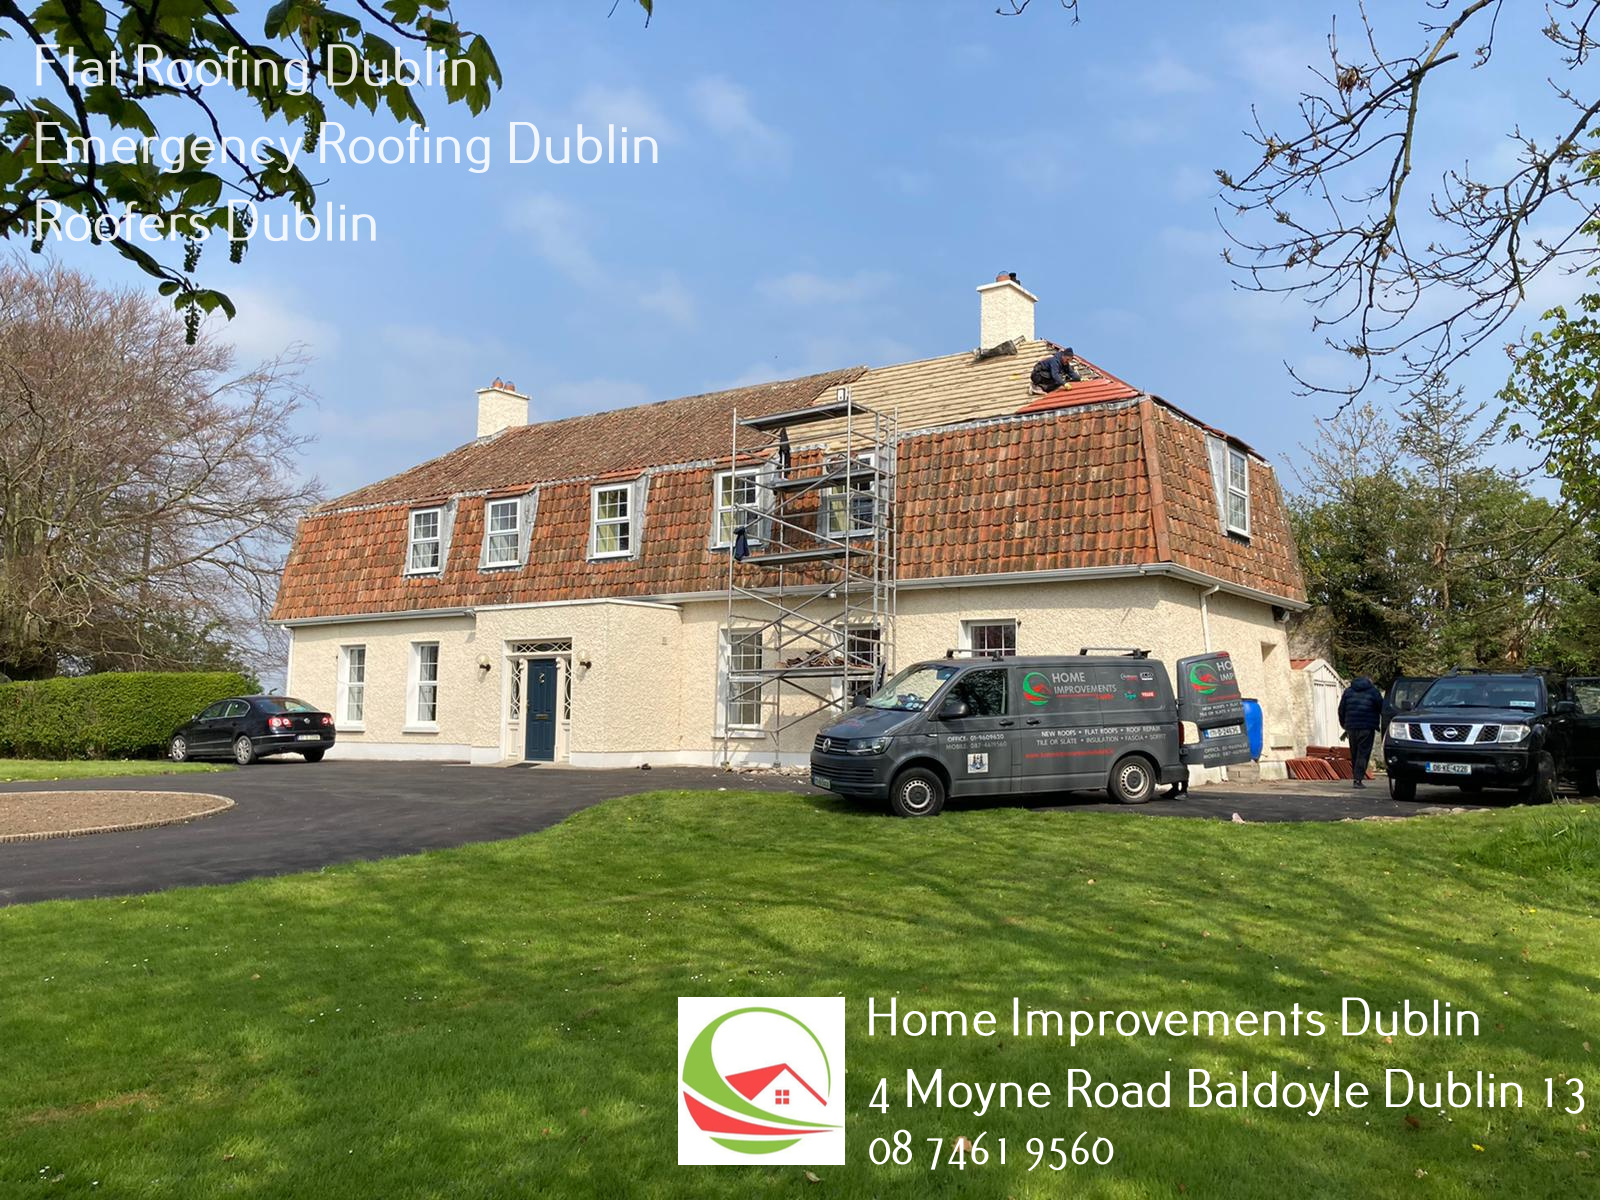 Home Improvements Dublin Officially Opens A New Business Profile On Google, Roof Repairs Dublin To Service Dublin 15 & Surrounding Areas